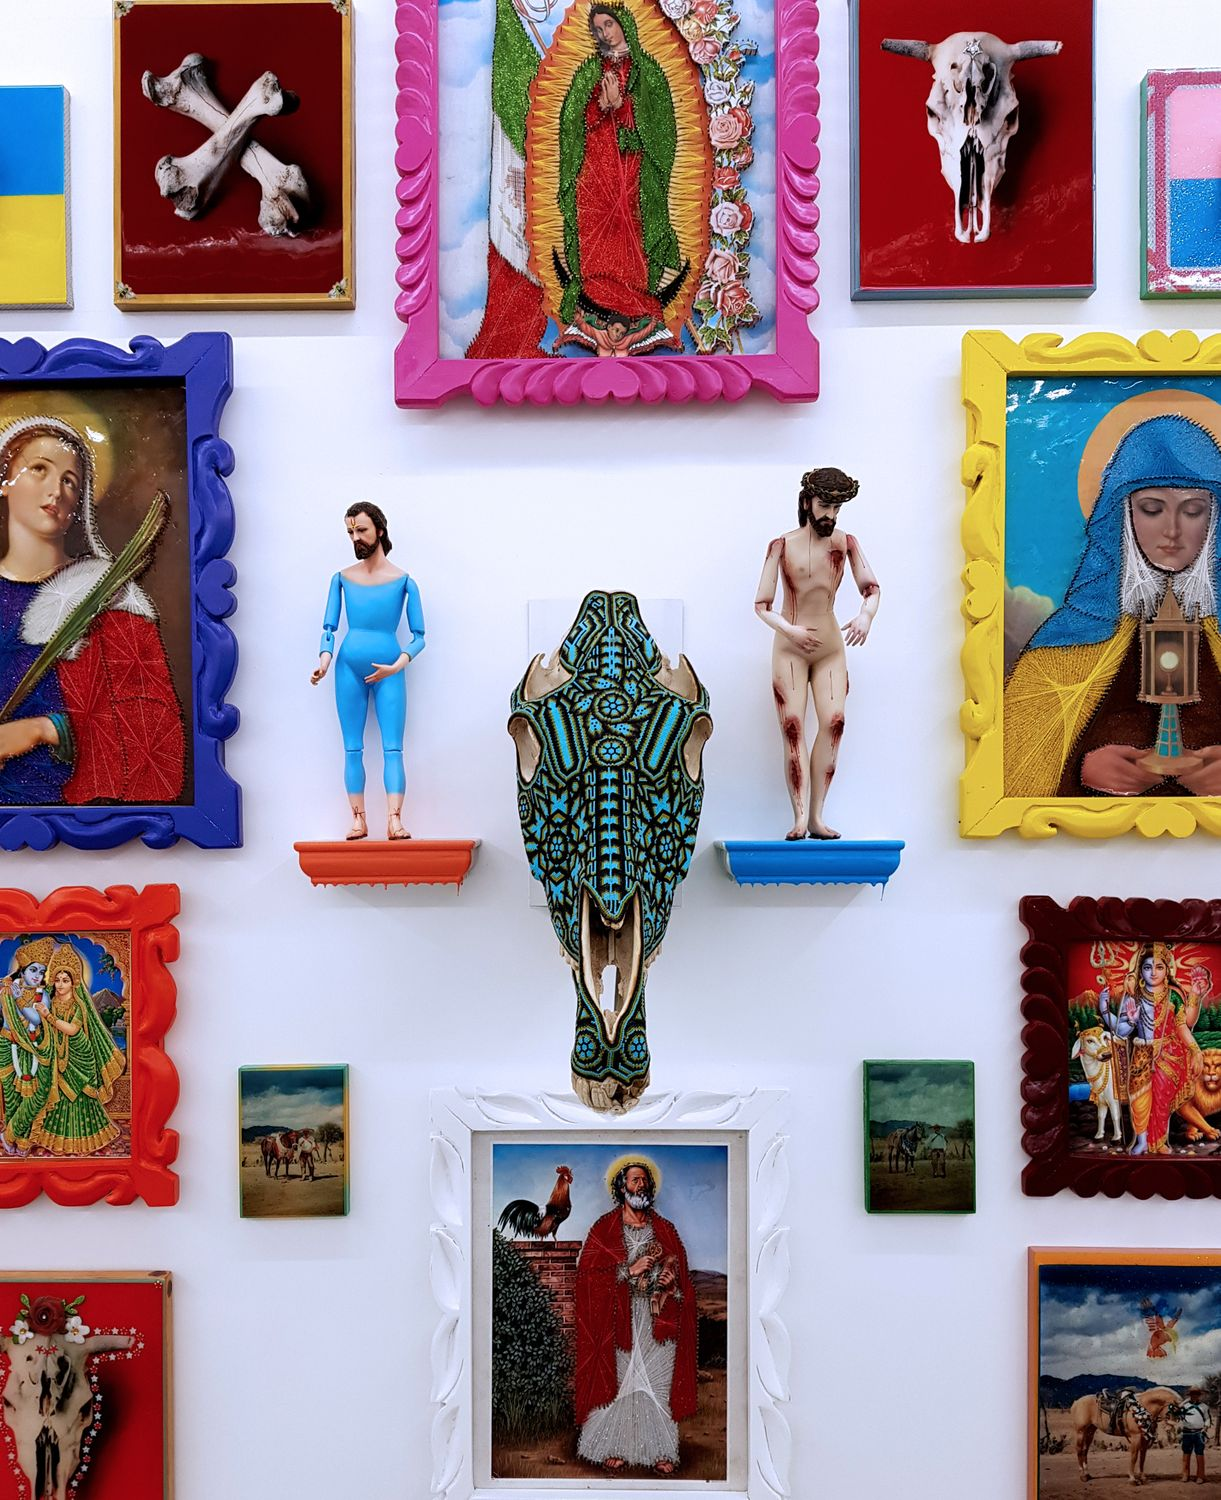 Brian Paumier Act Of Faith Exhibition At New Art Projects